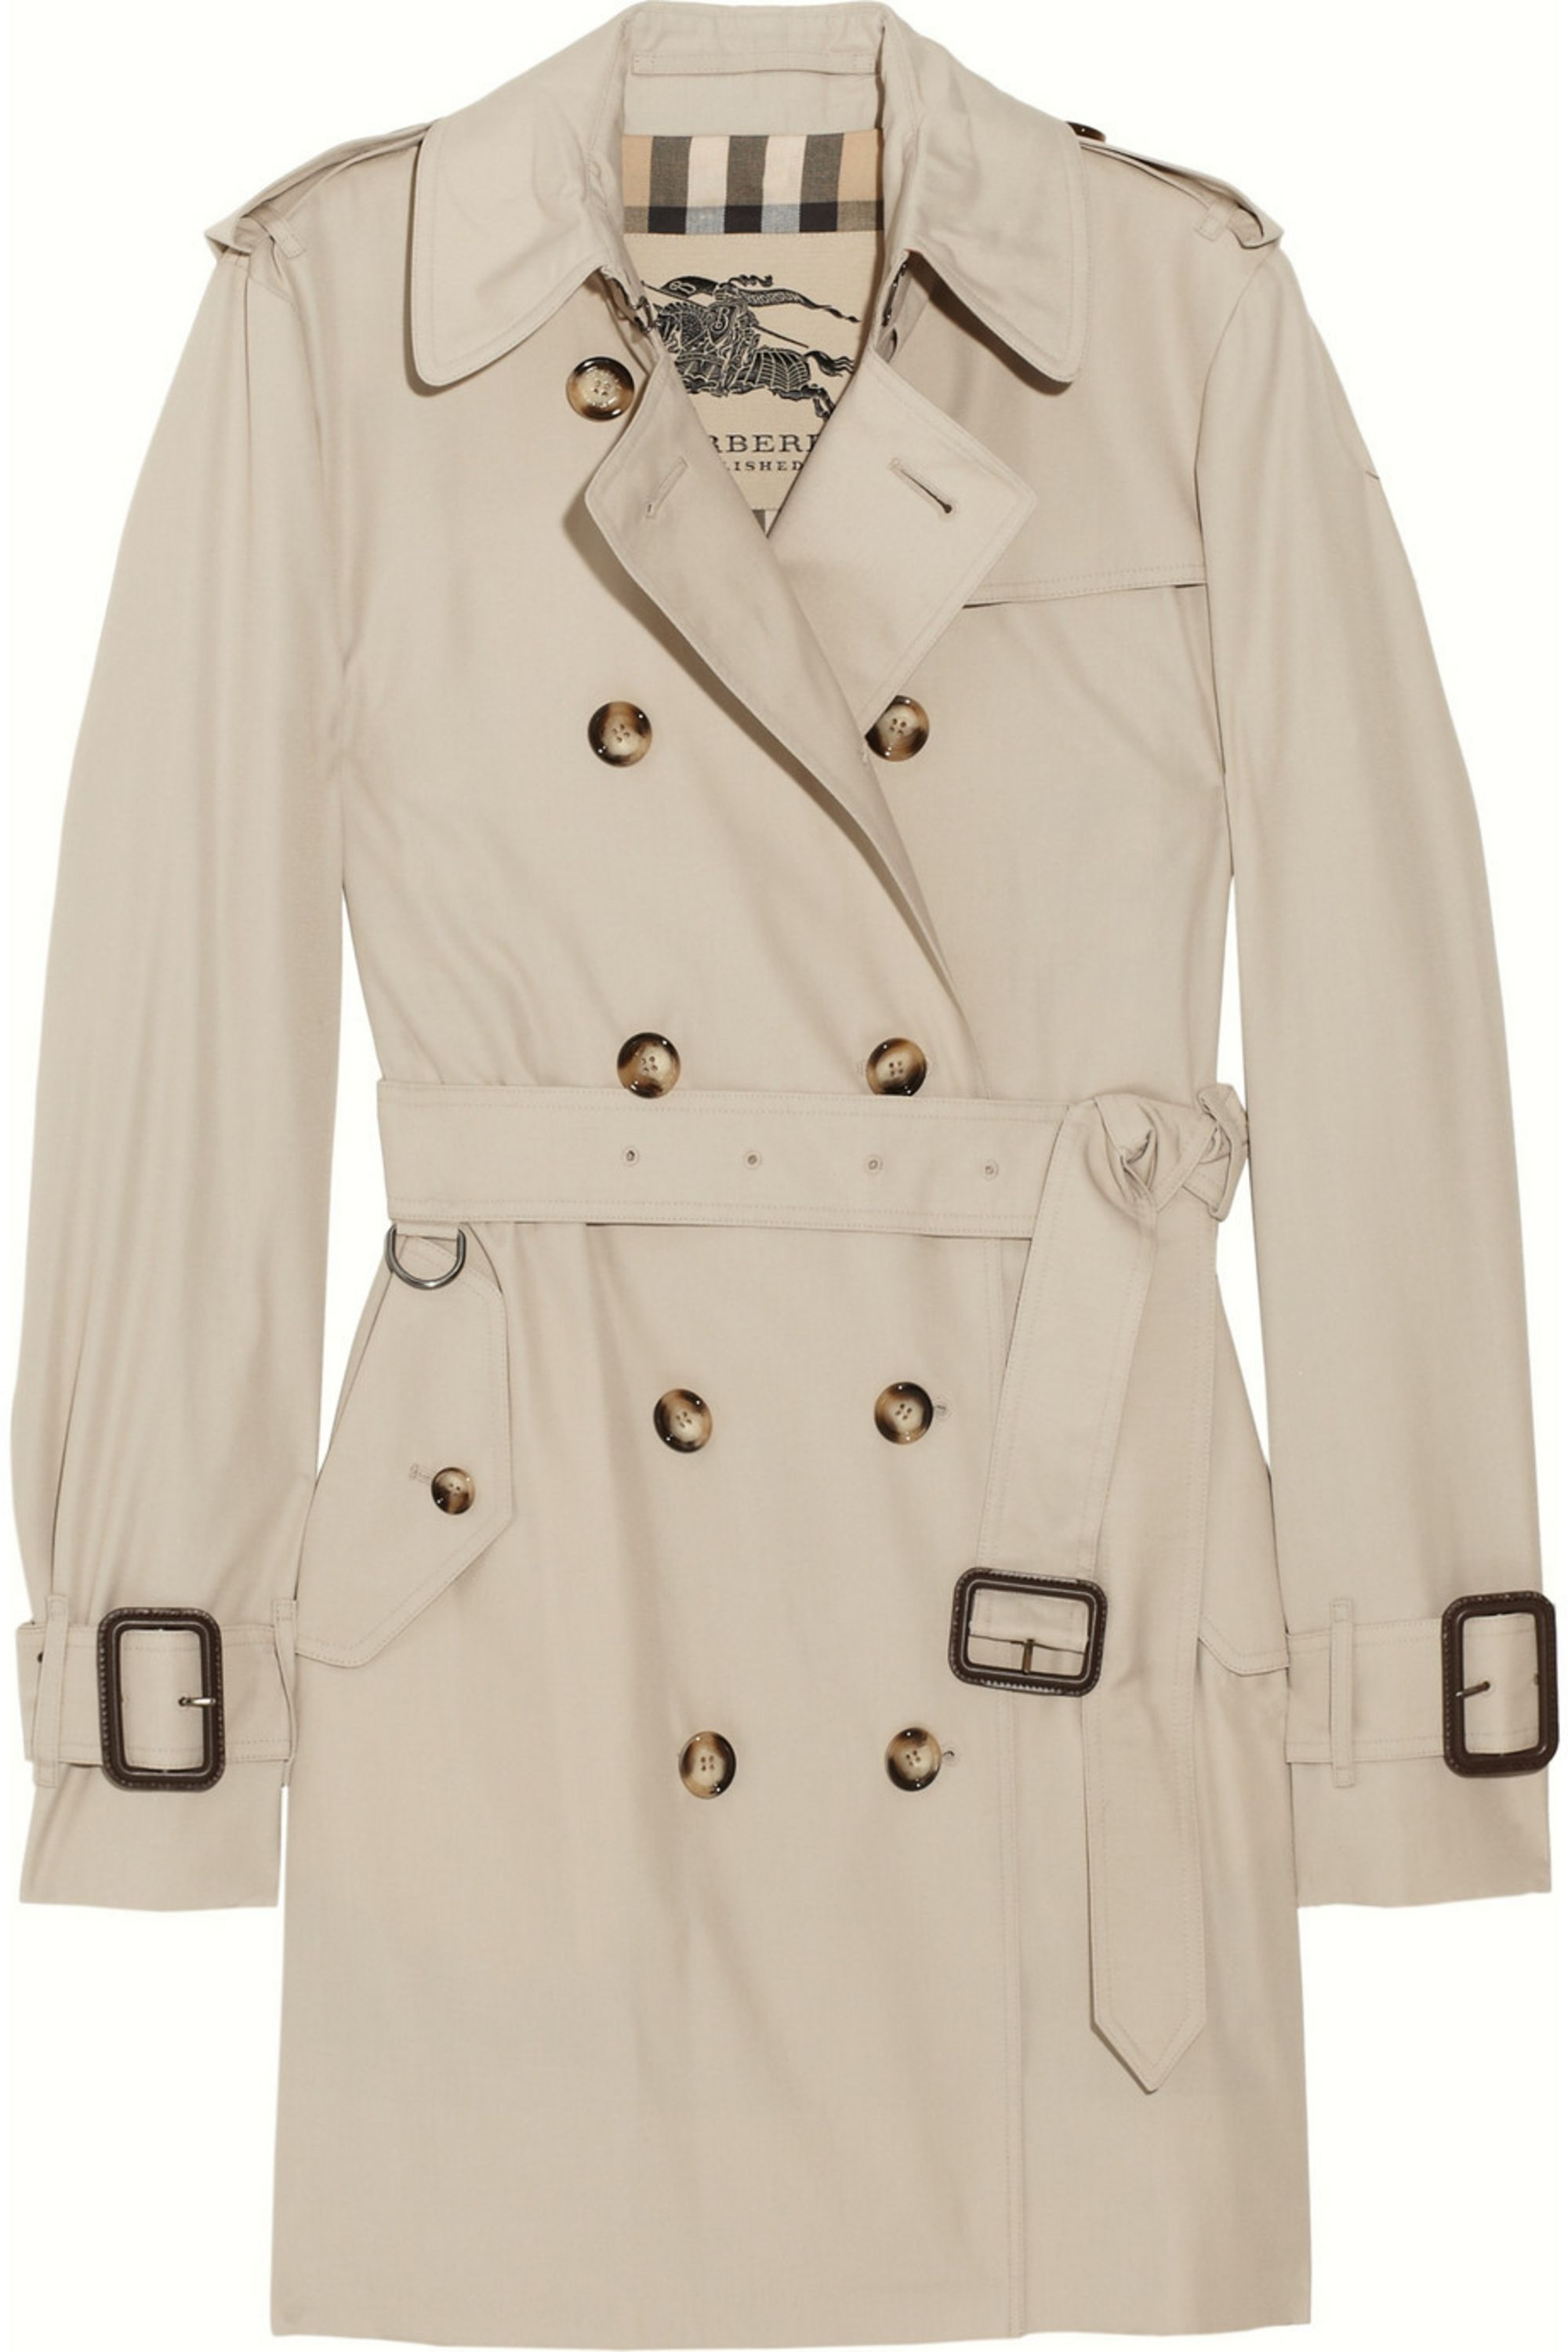 Burberry Mid-length gabardine trench coat